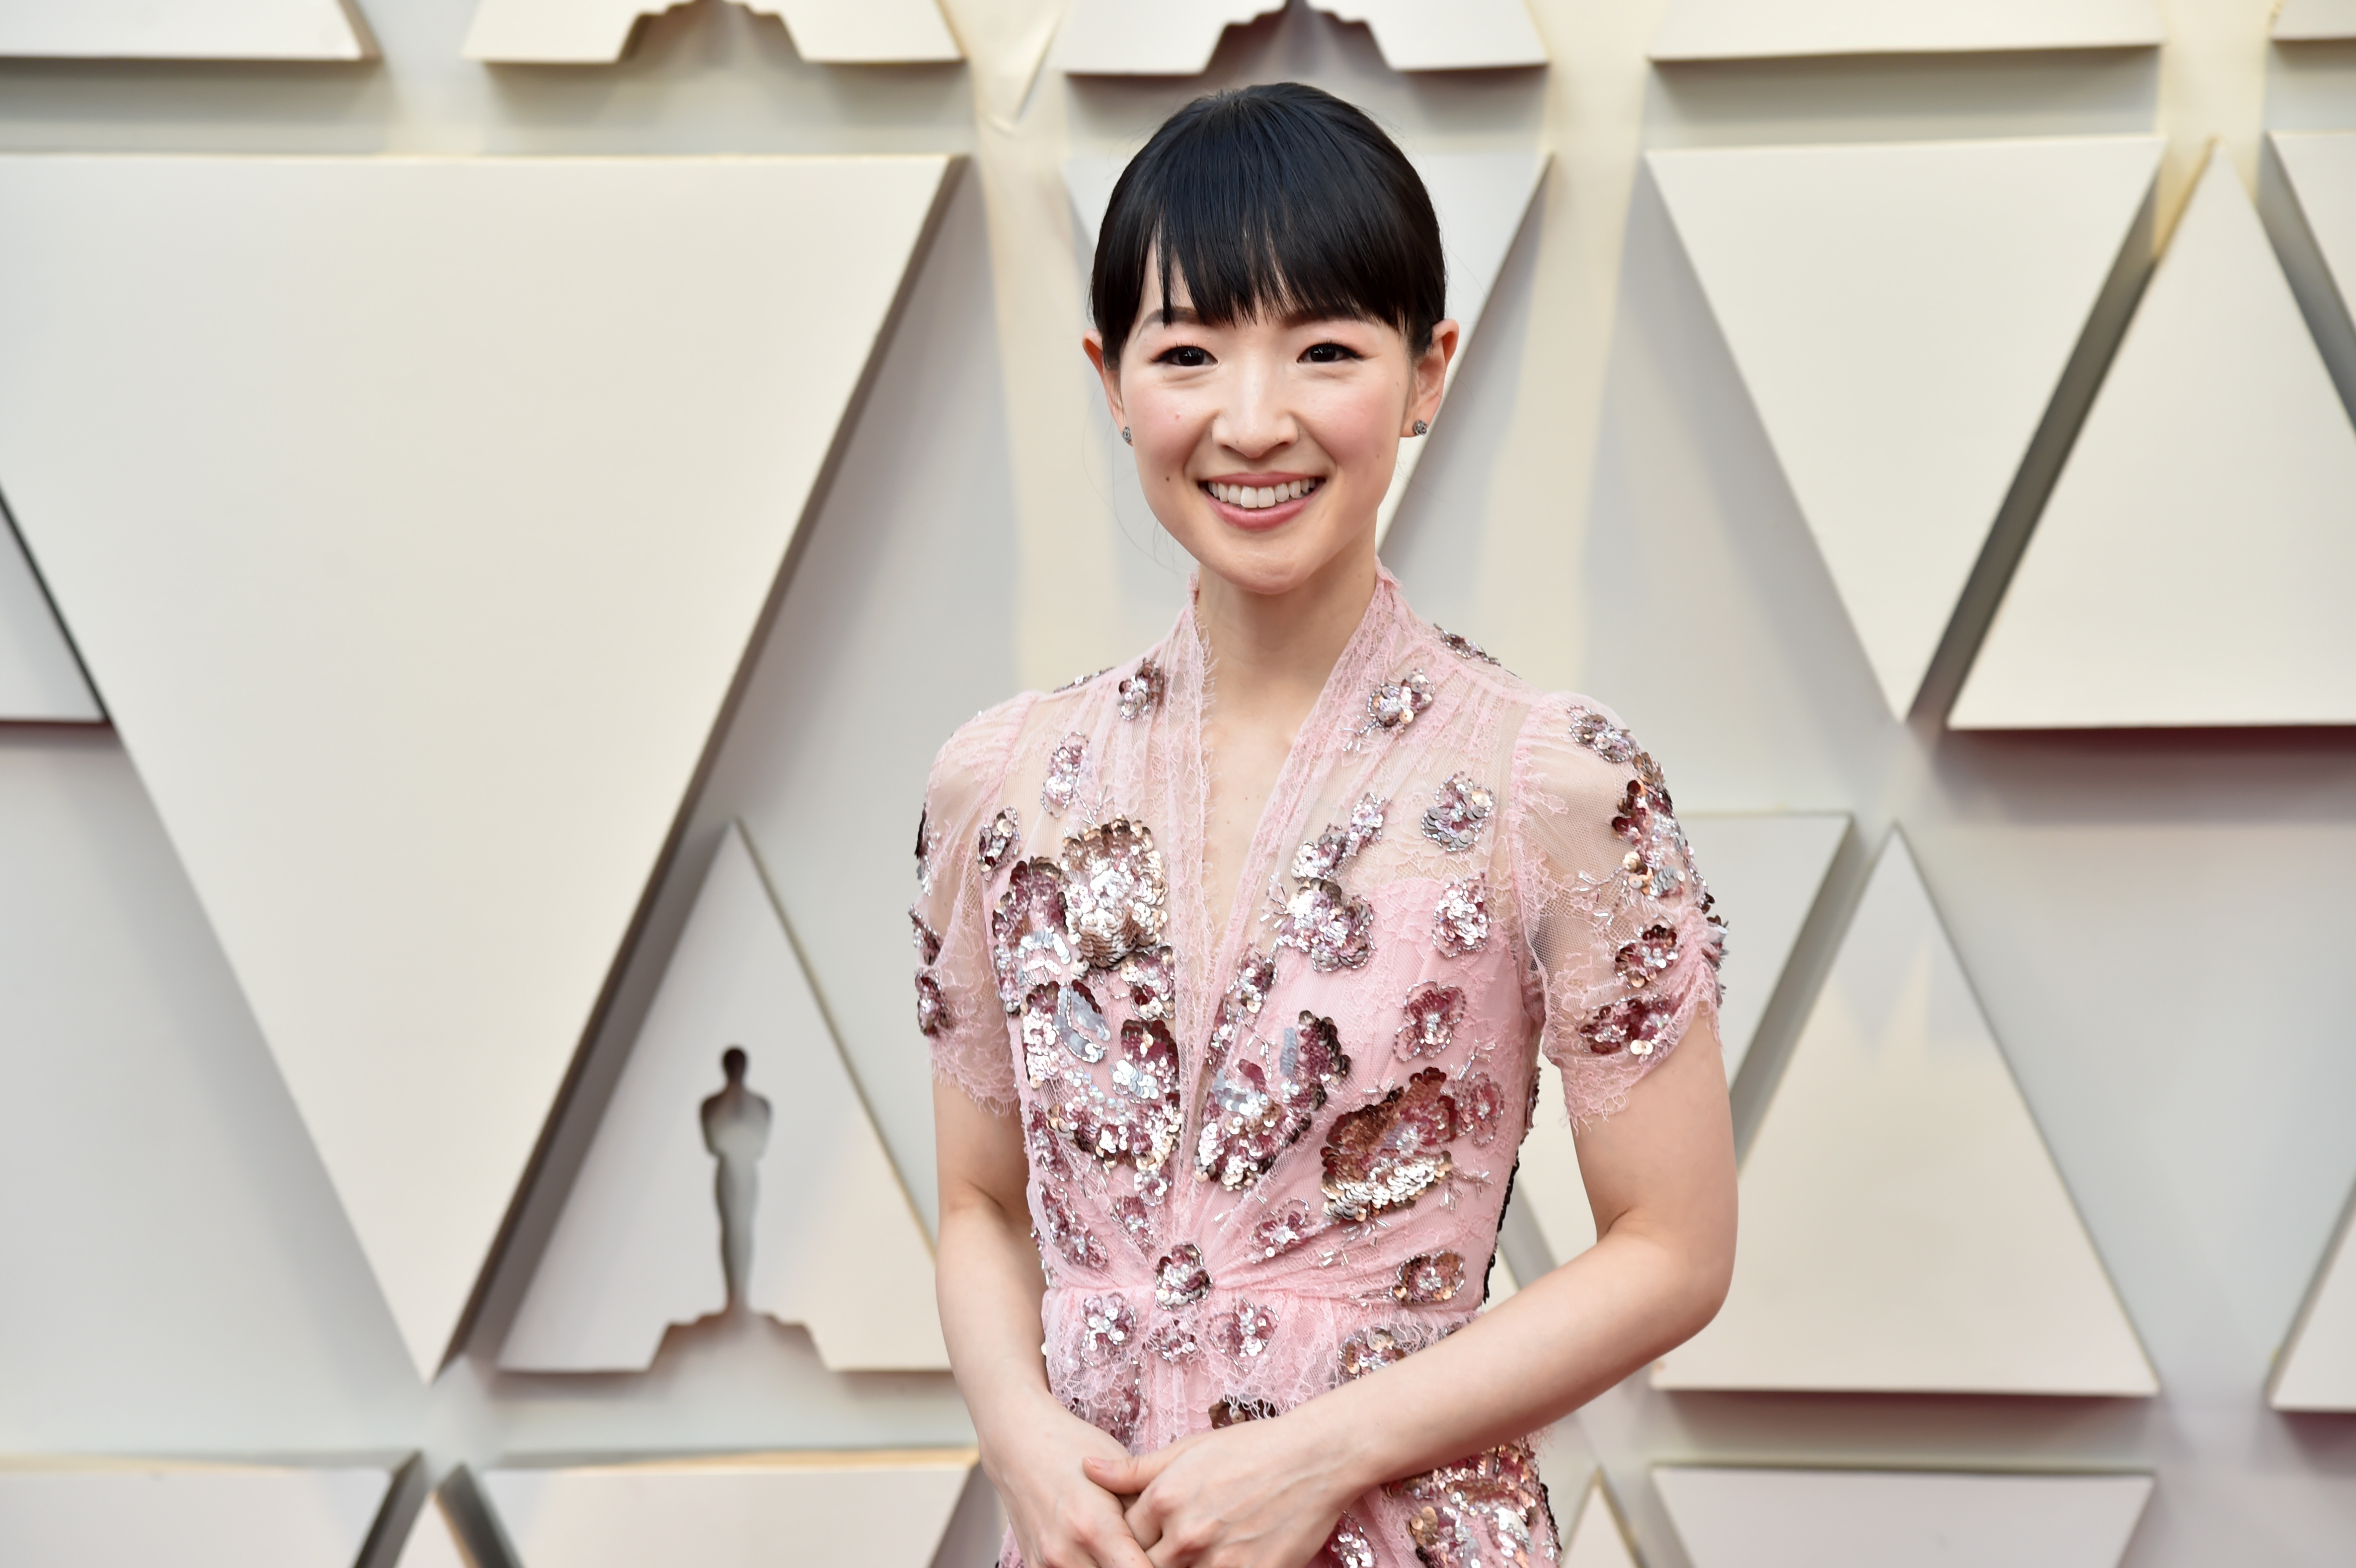 Marie Kondo Reveals the Four Things She Does Every Single Day to Keep Her Home Tidy